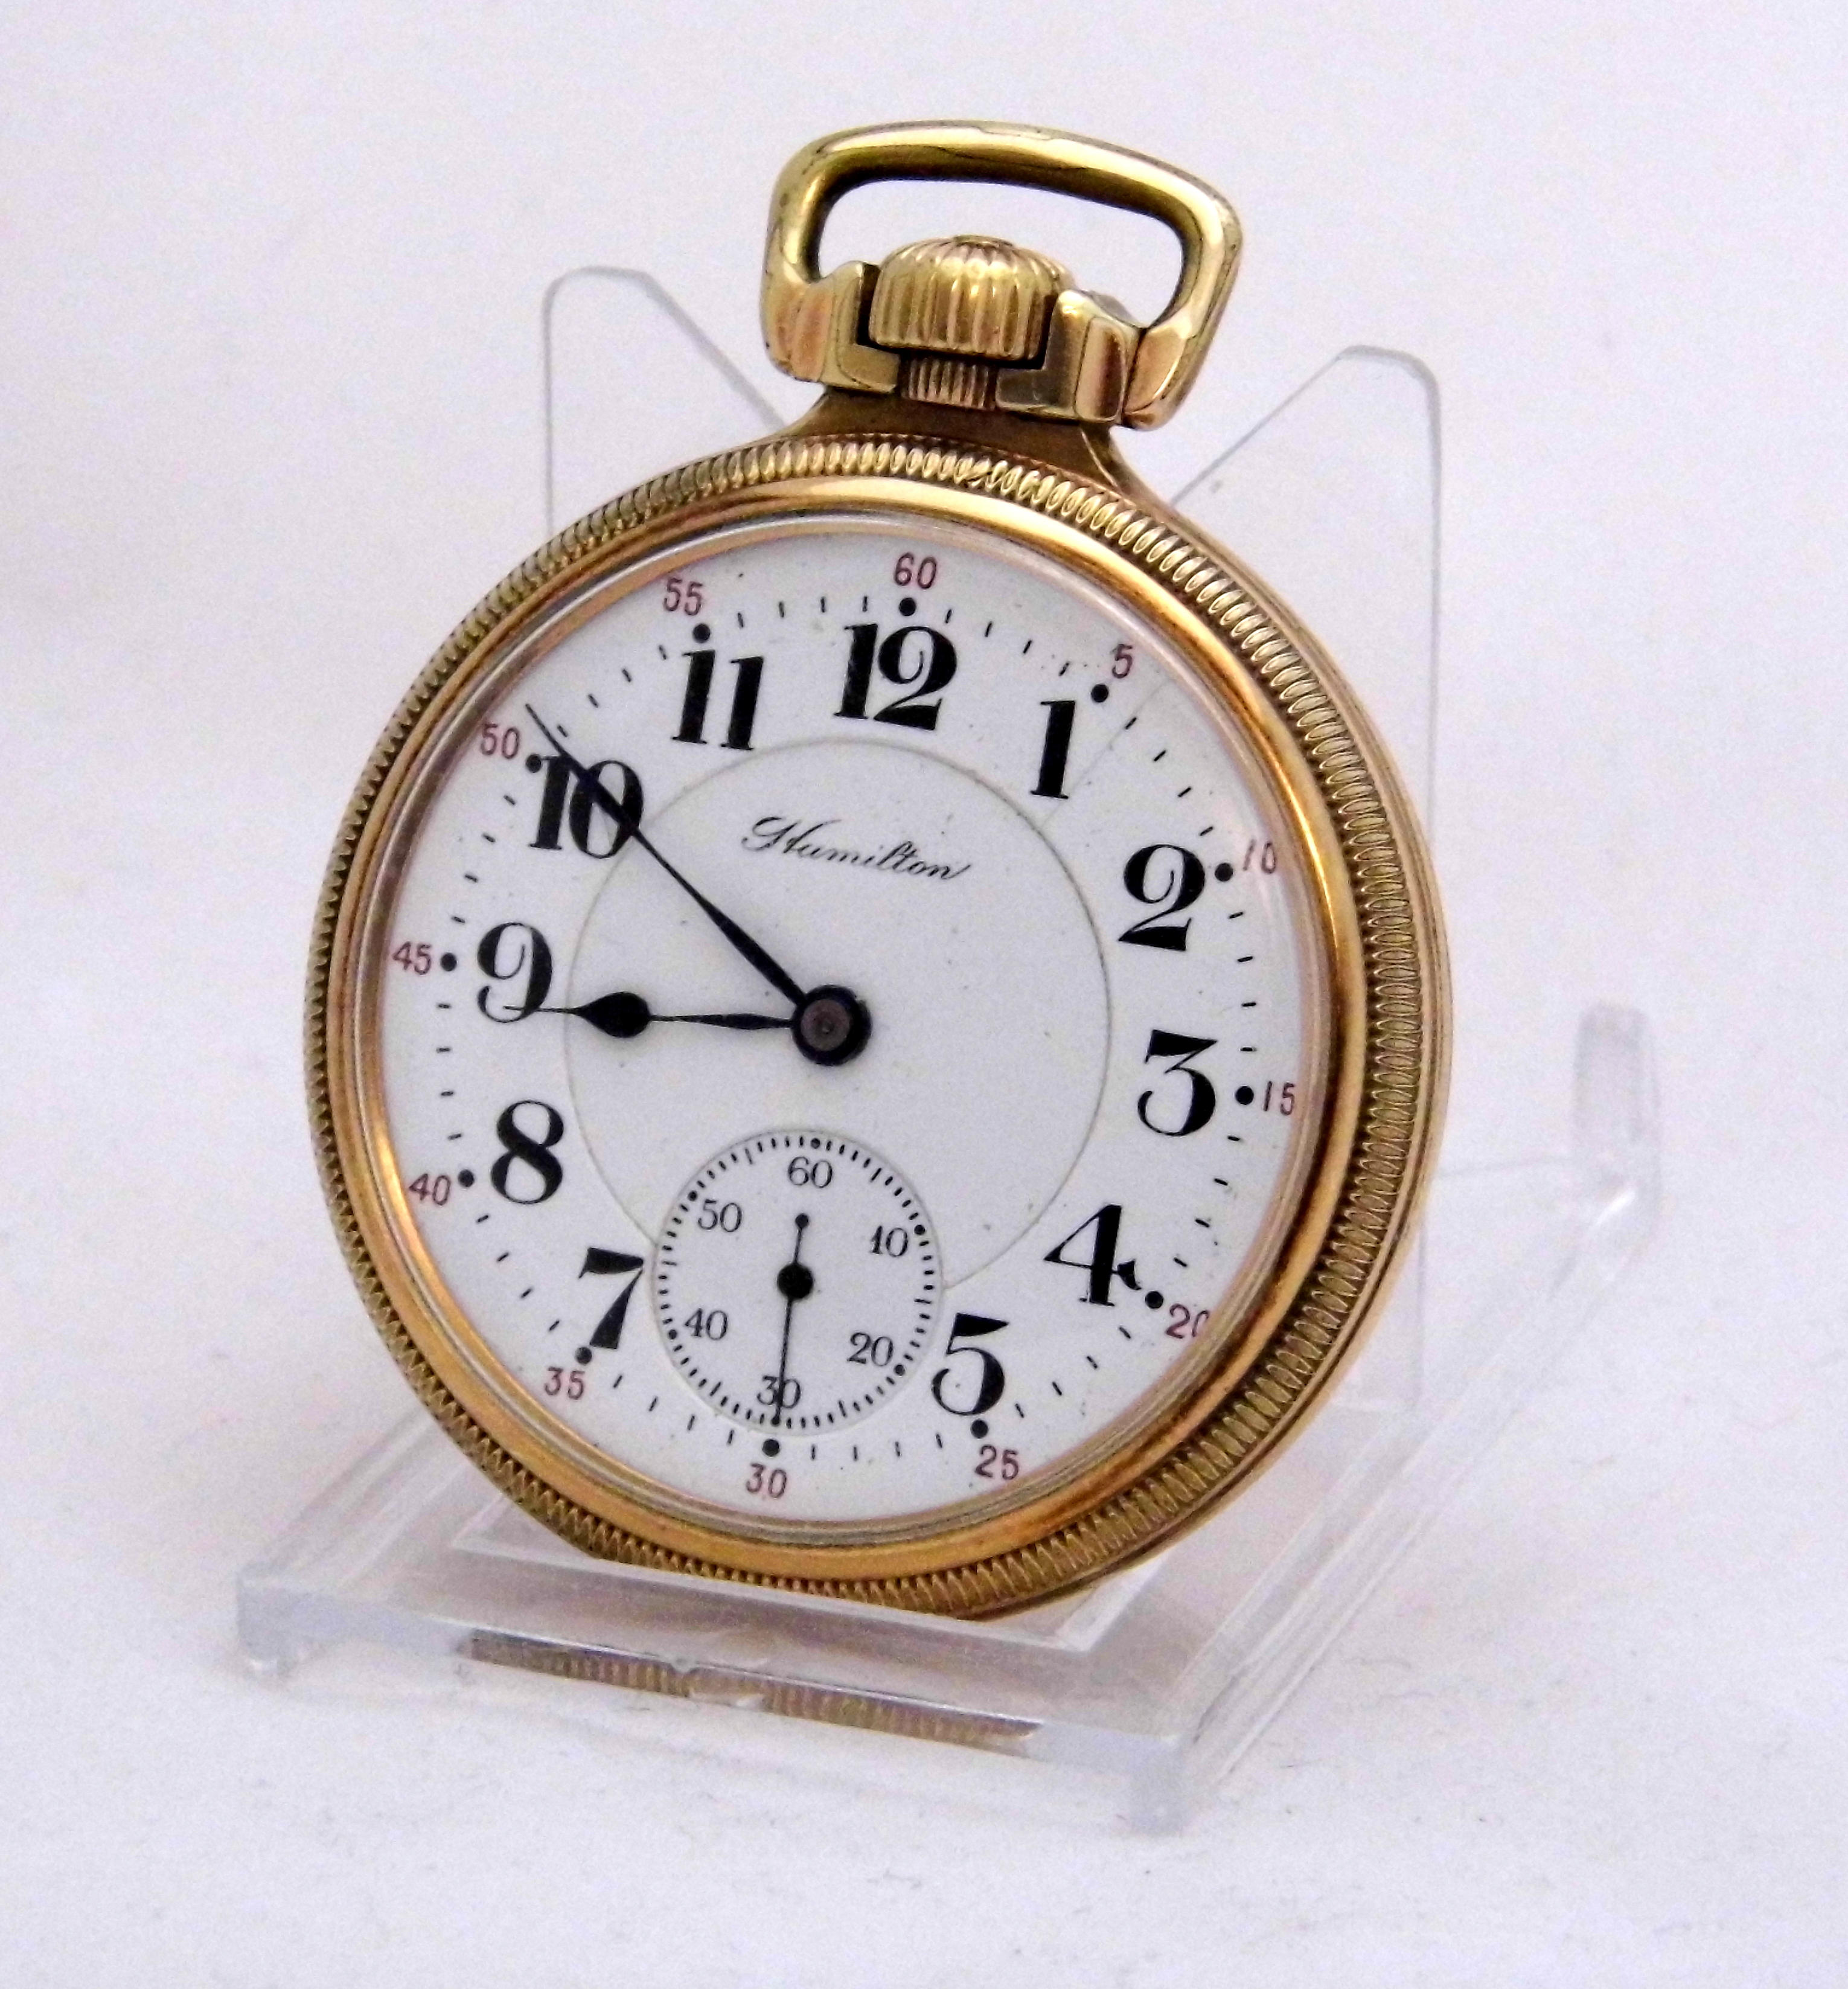 How to Date a Pocket Watch